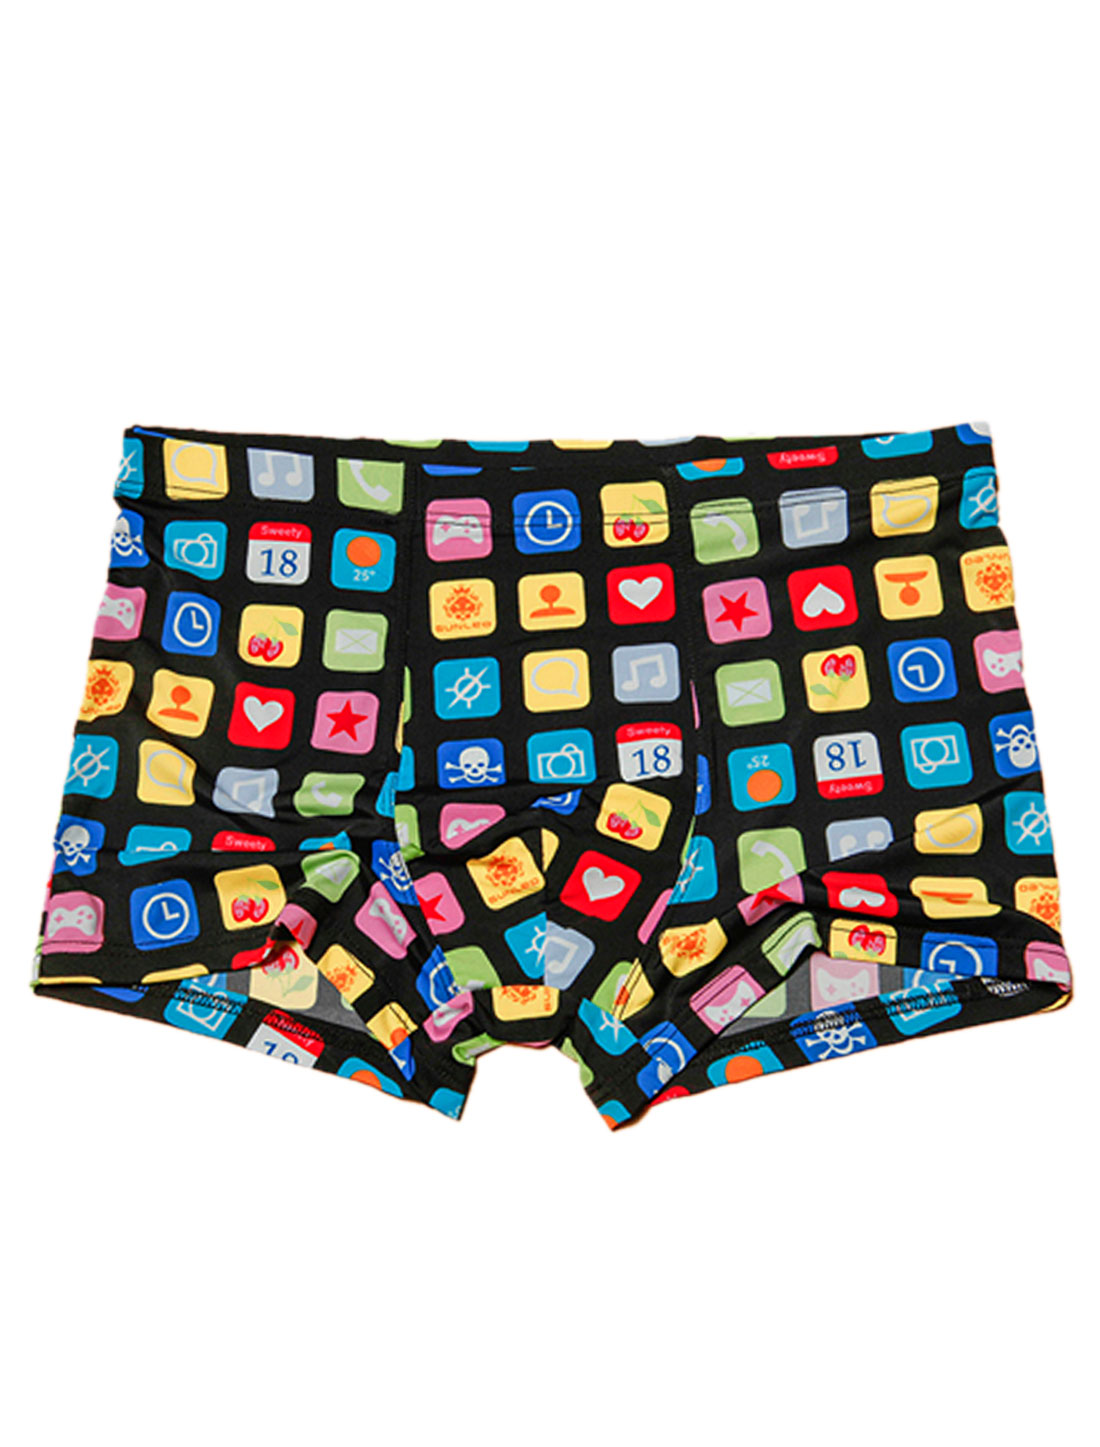 Men Elastic Waist Cell Phone Keypads Pattern Stretchy Boxer Briefs Black W30